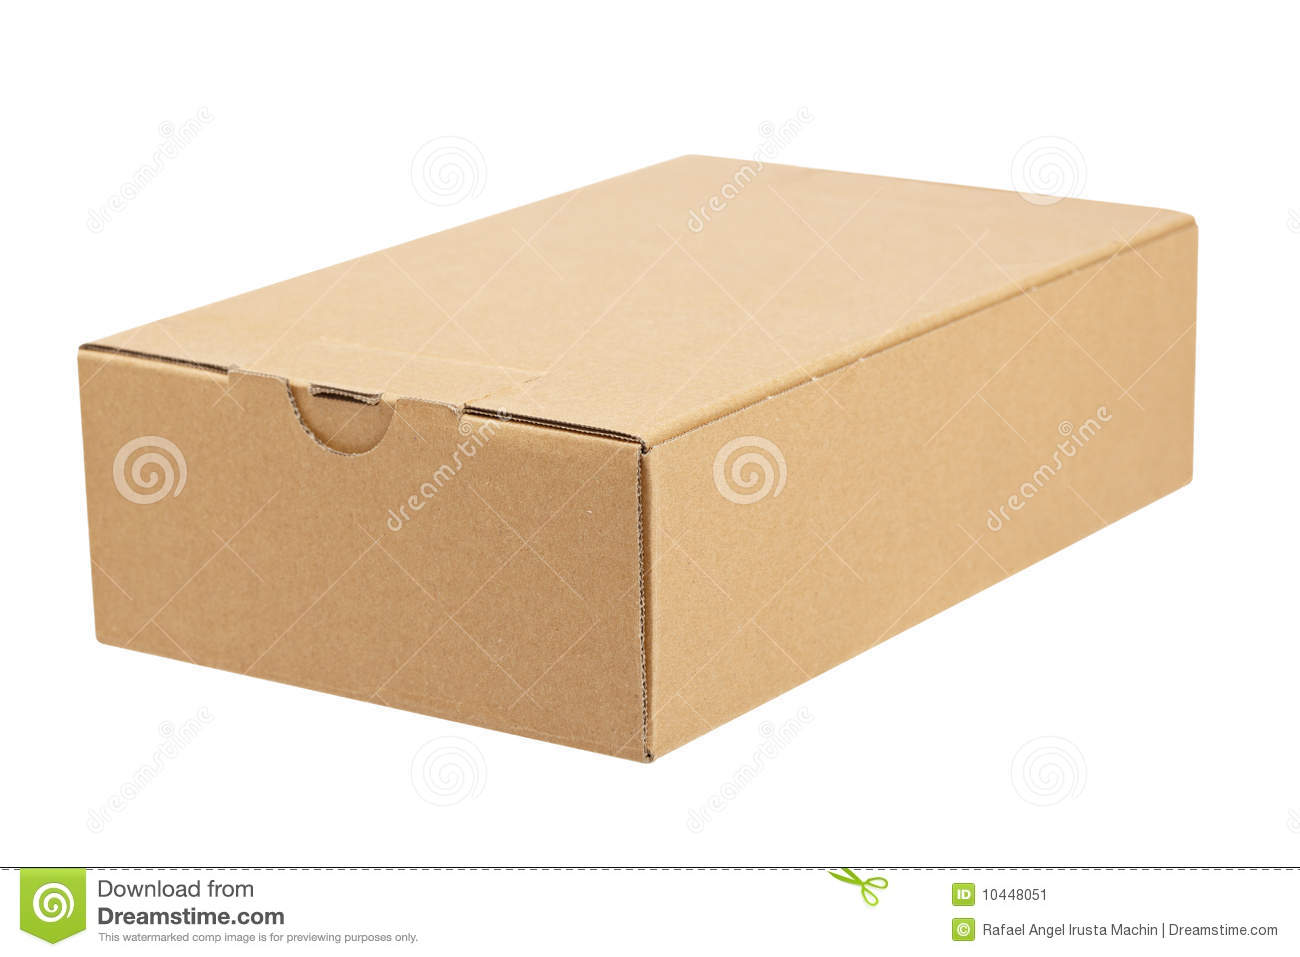 cardboard box, isolated on white background. Shallow depth of field.